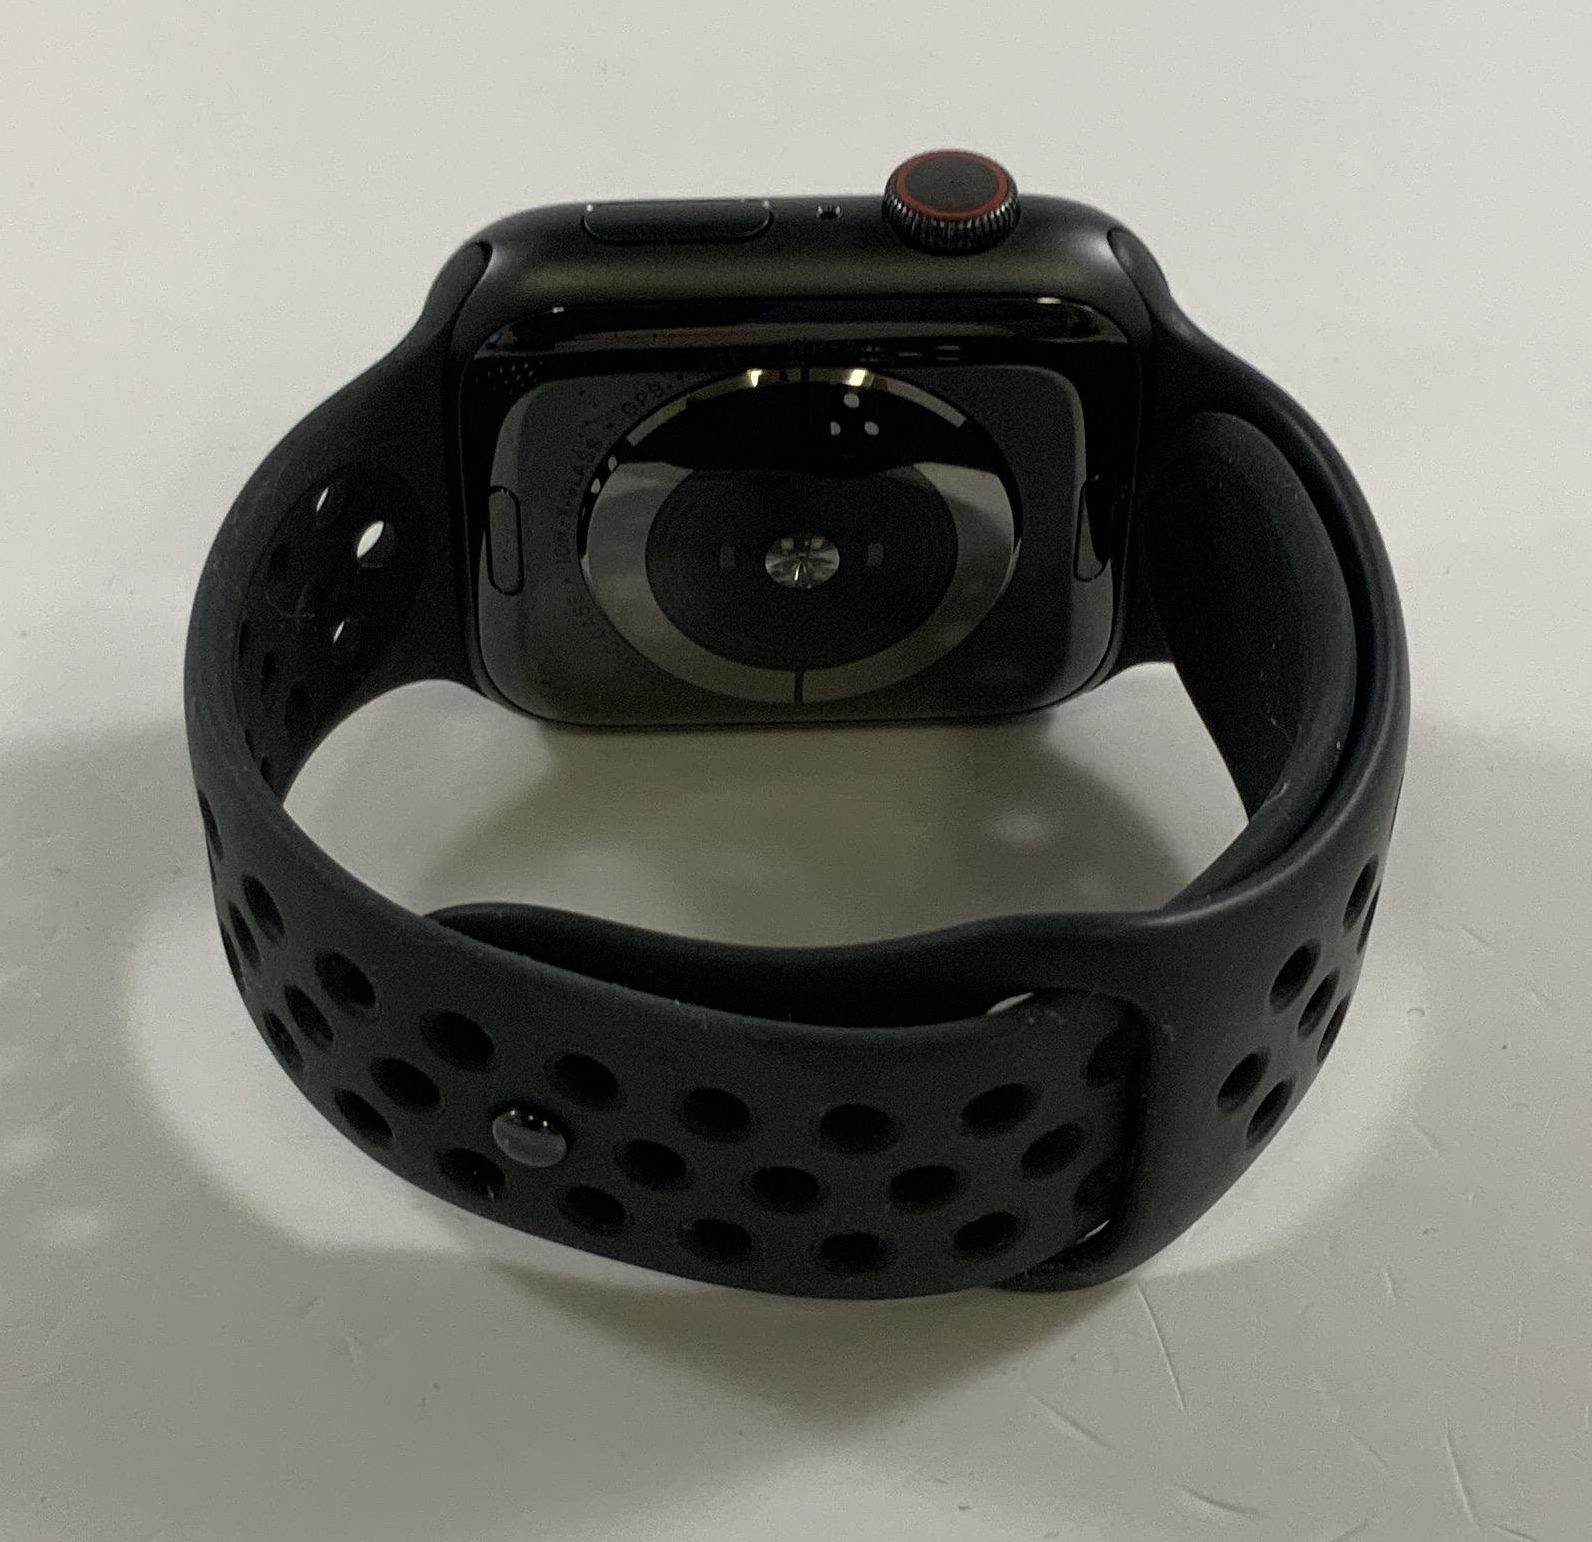 Watch Series 5 Aluminum Cellular (44mm), Space Gray, Kuva 2